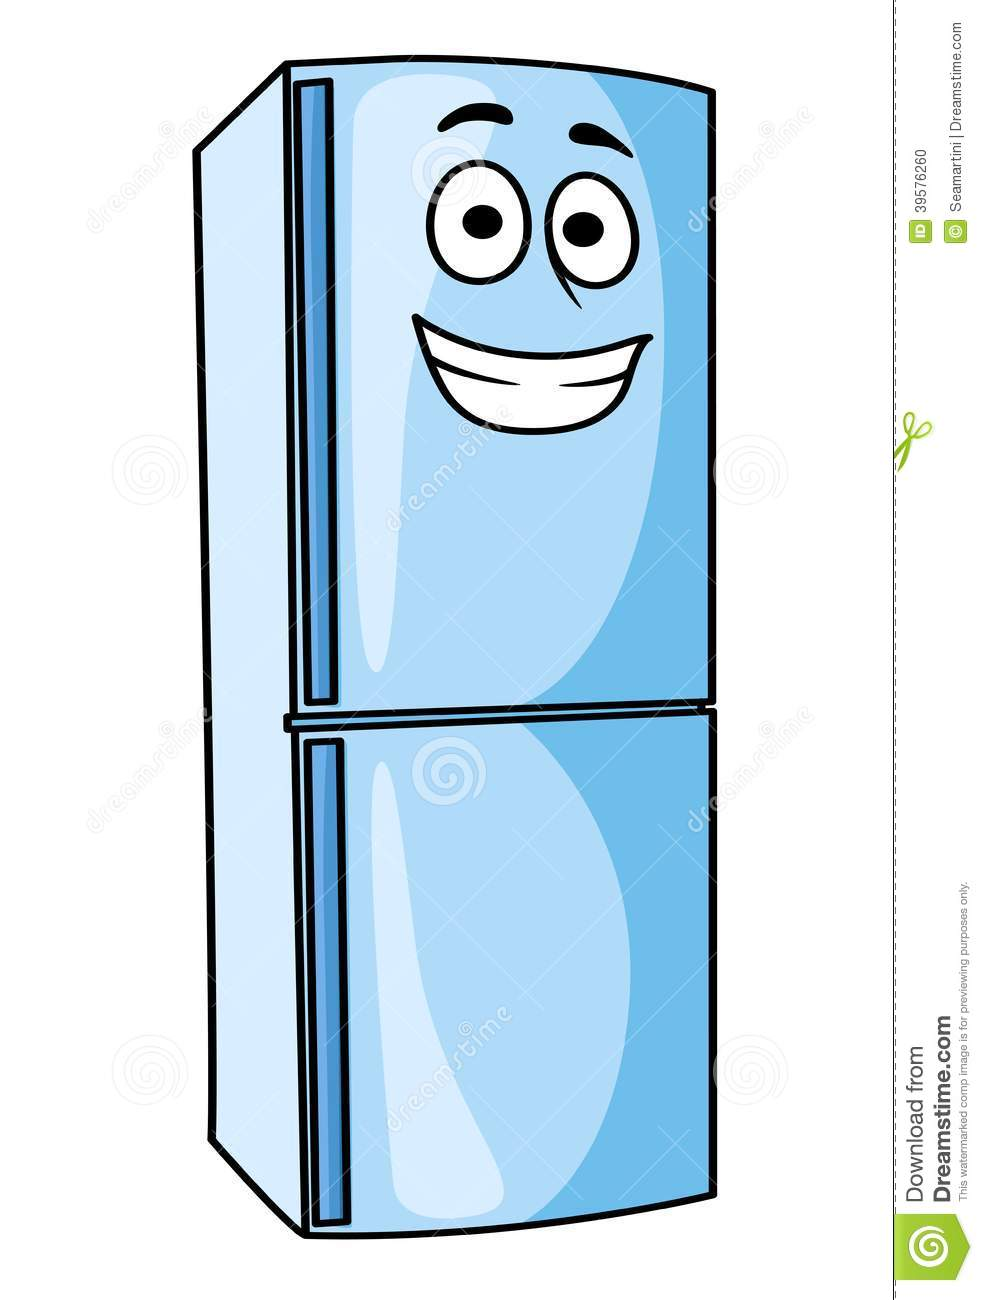 Fridge clean out clipart banner stock Refrigerator Clipart   Free download best Refrigerator Clipart on ... banner stock